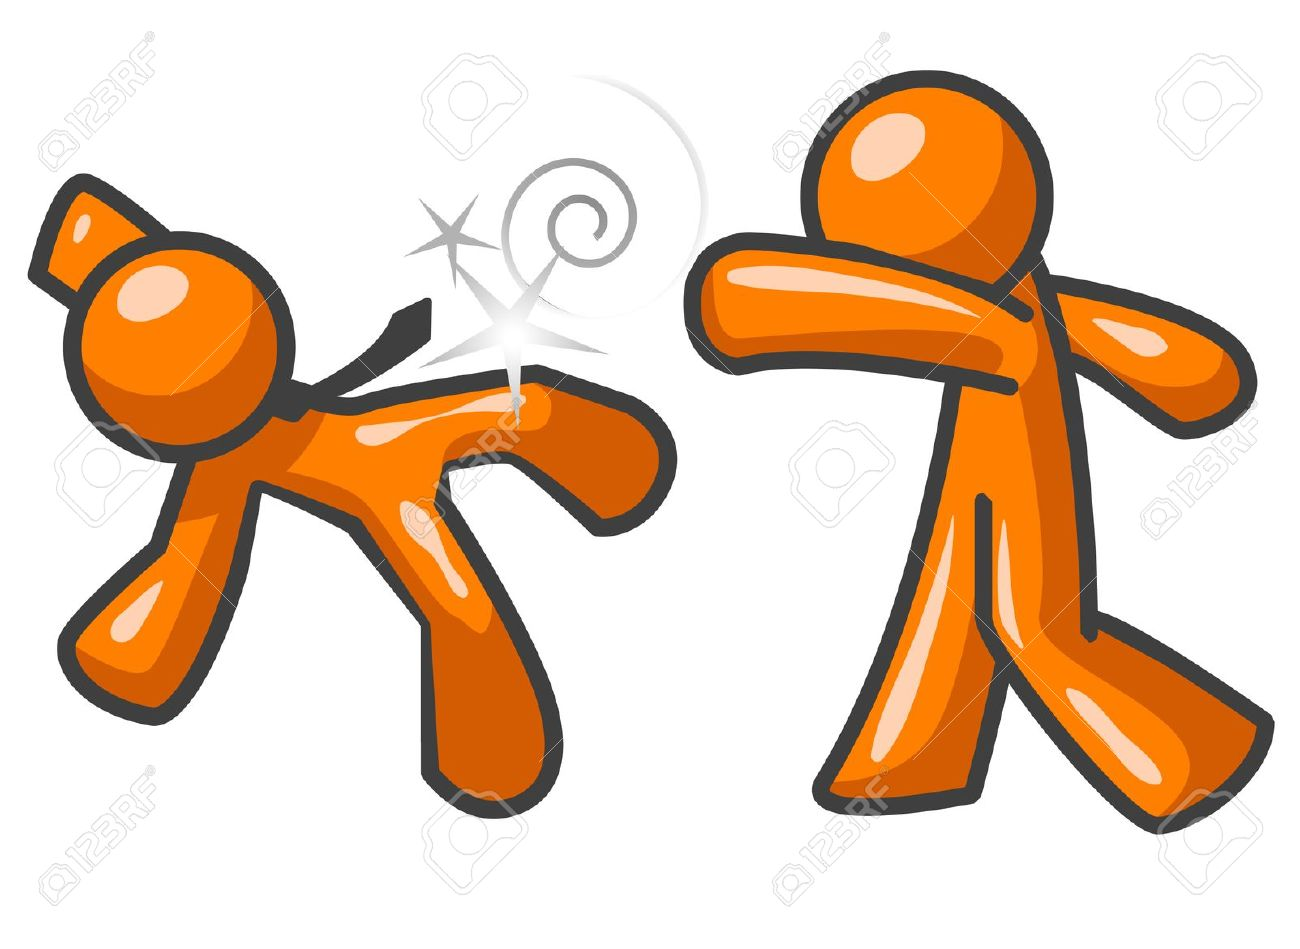 Clipart of two people falling.